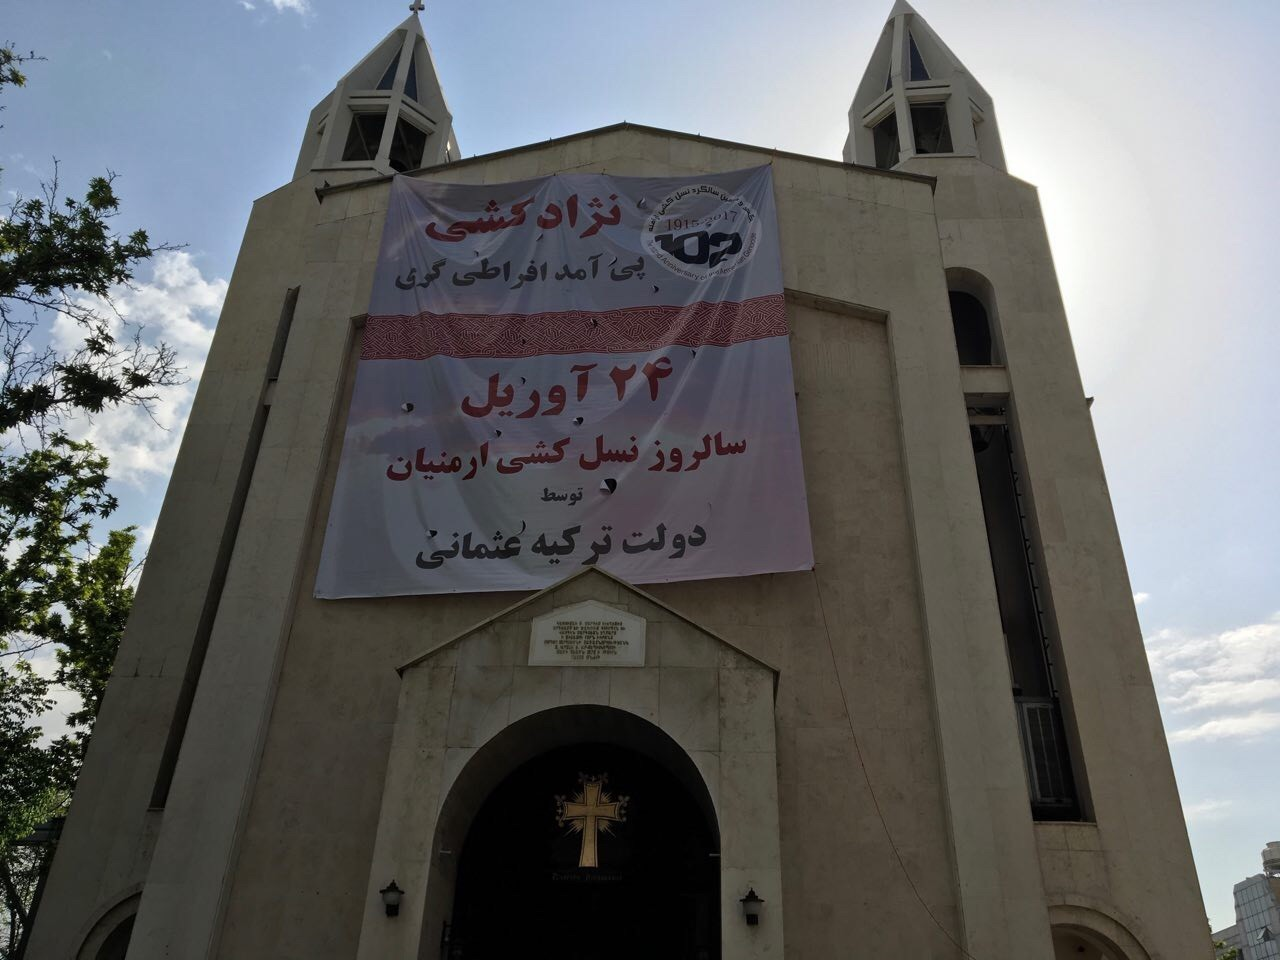 Worshipers gather at St. Sarkis Armenian Church in Tehran.